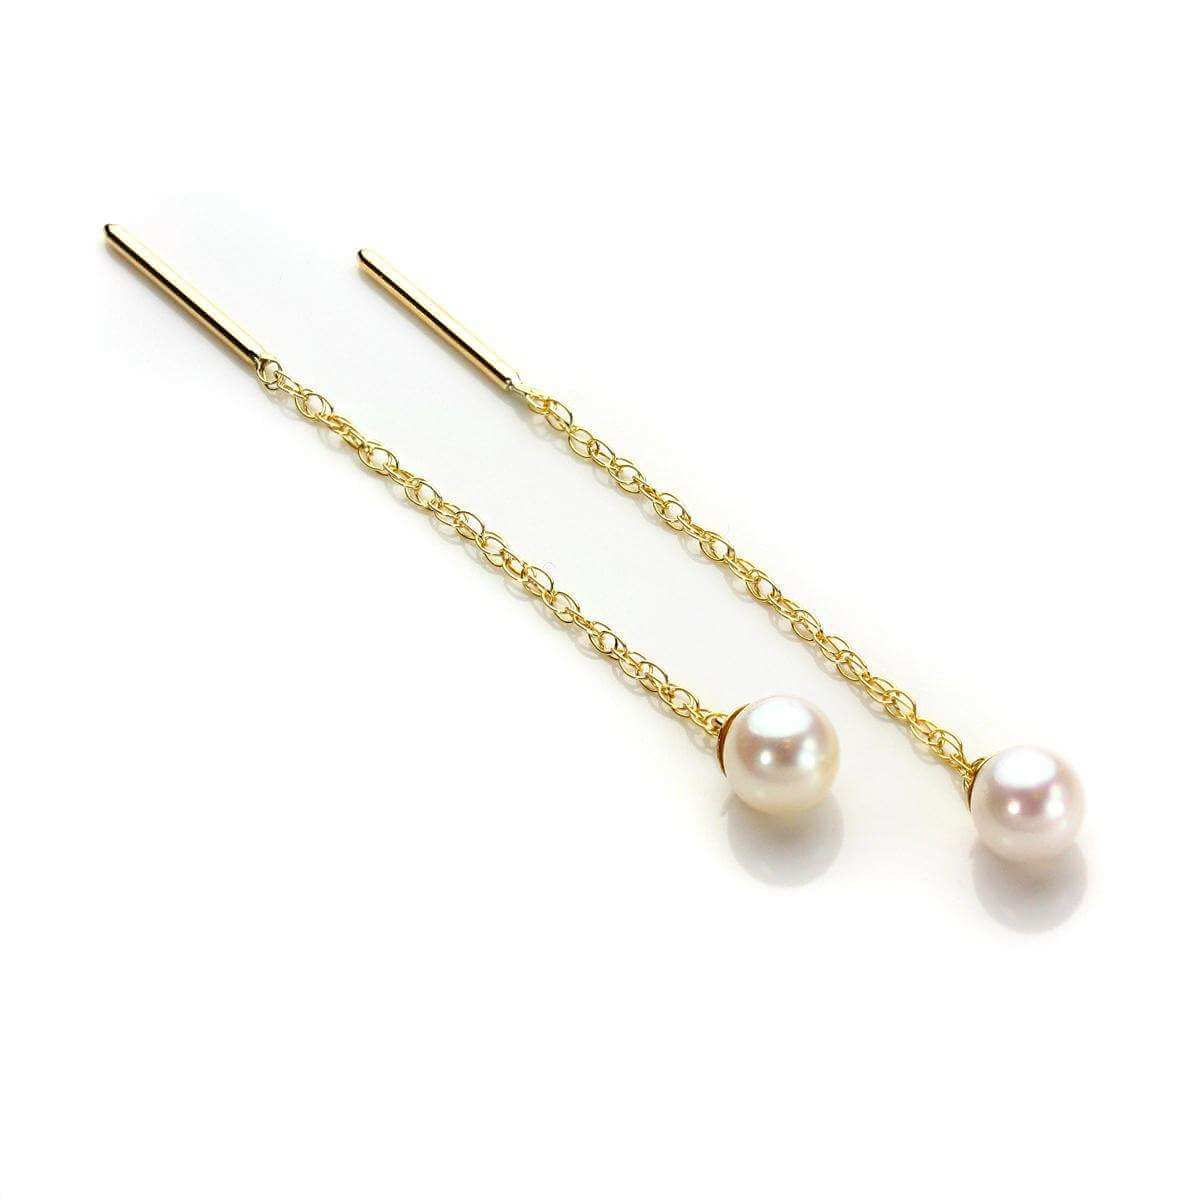 9ct Yellow Gold Cultured Pearl Pull Through Earrings